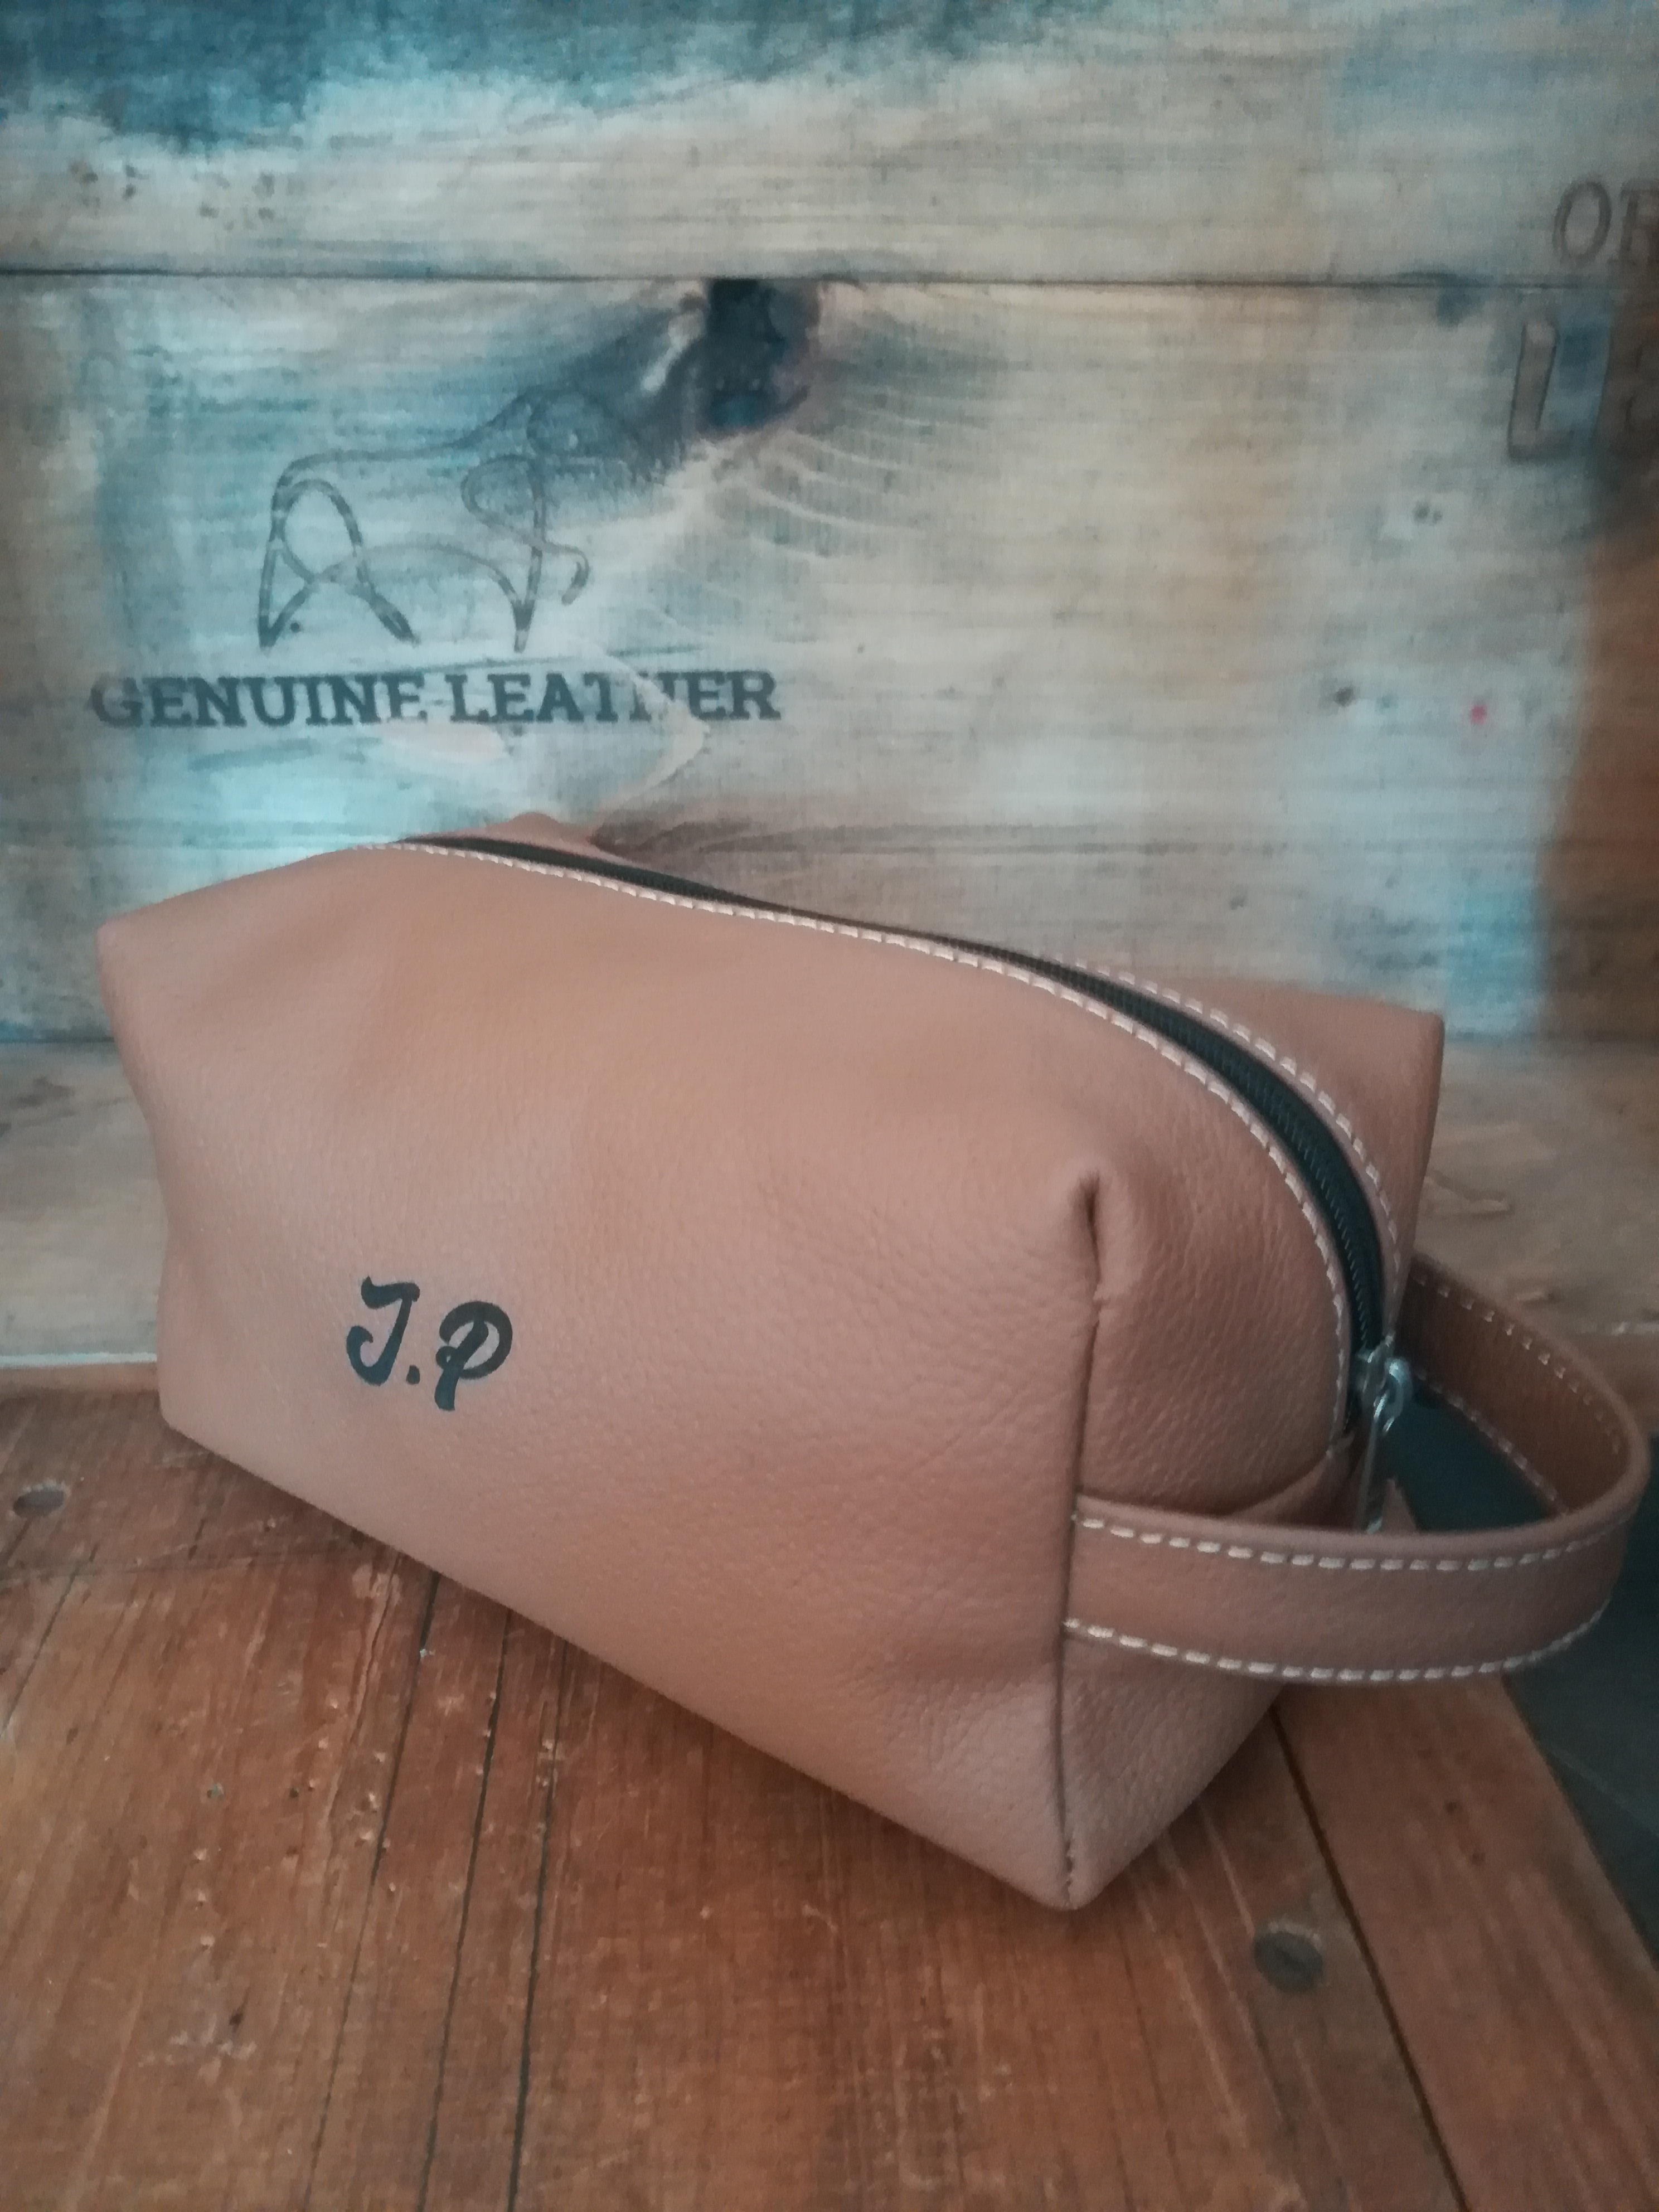 Engraved Toiletry bag